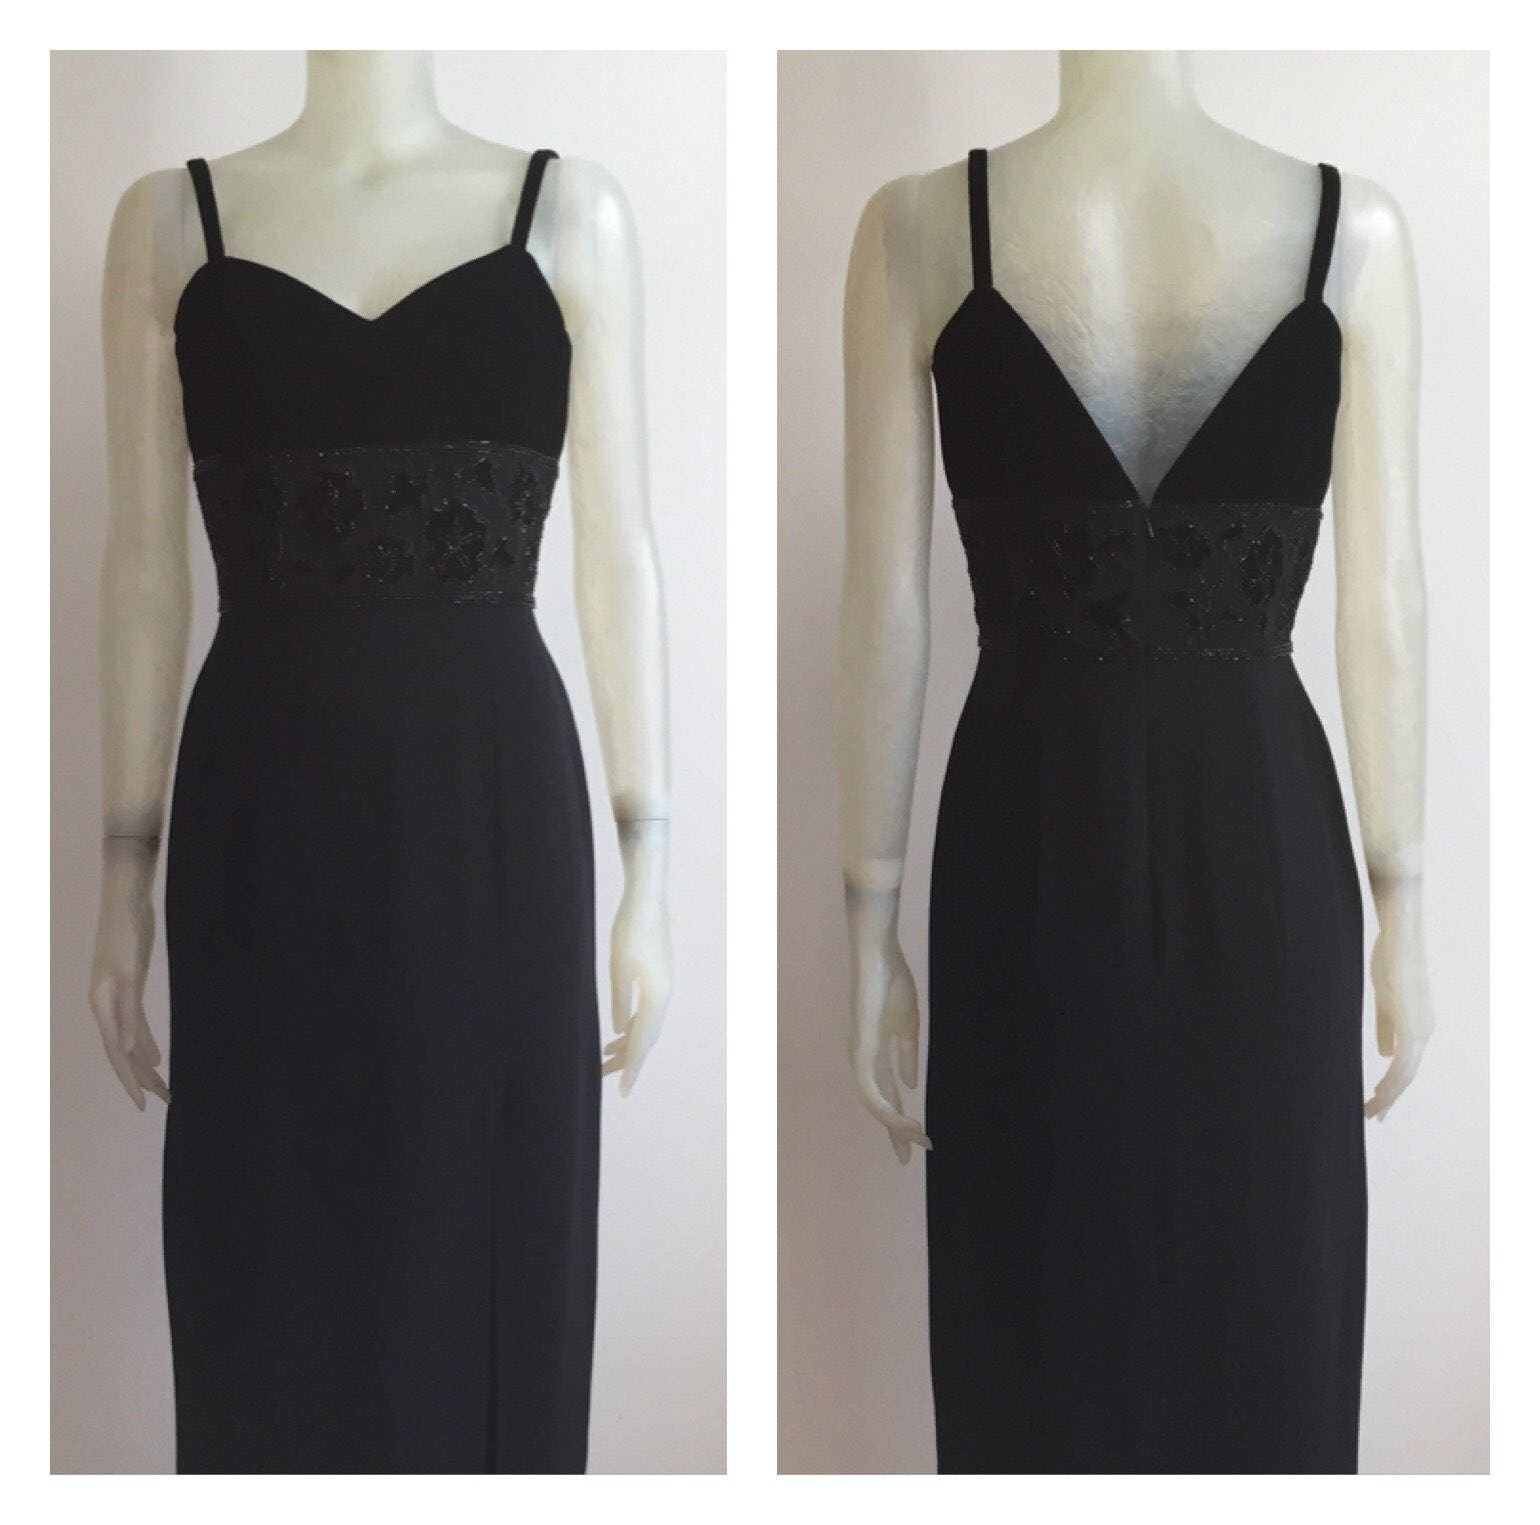 Oleg Cassini black tie evening gown